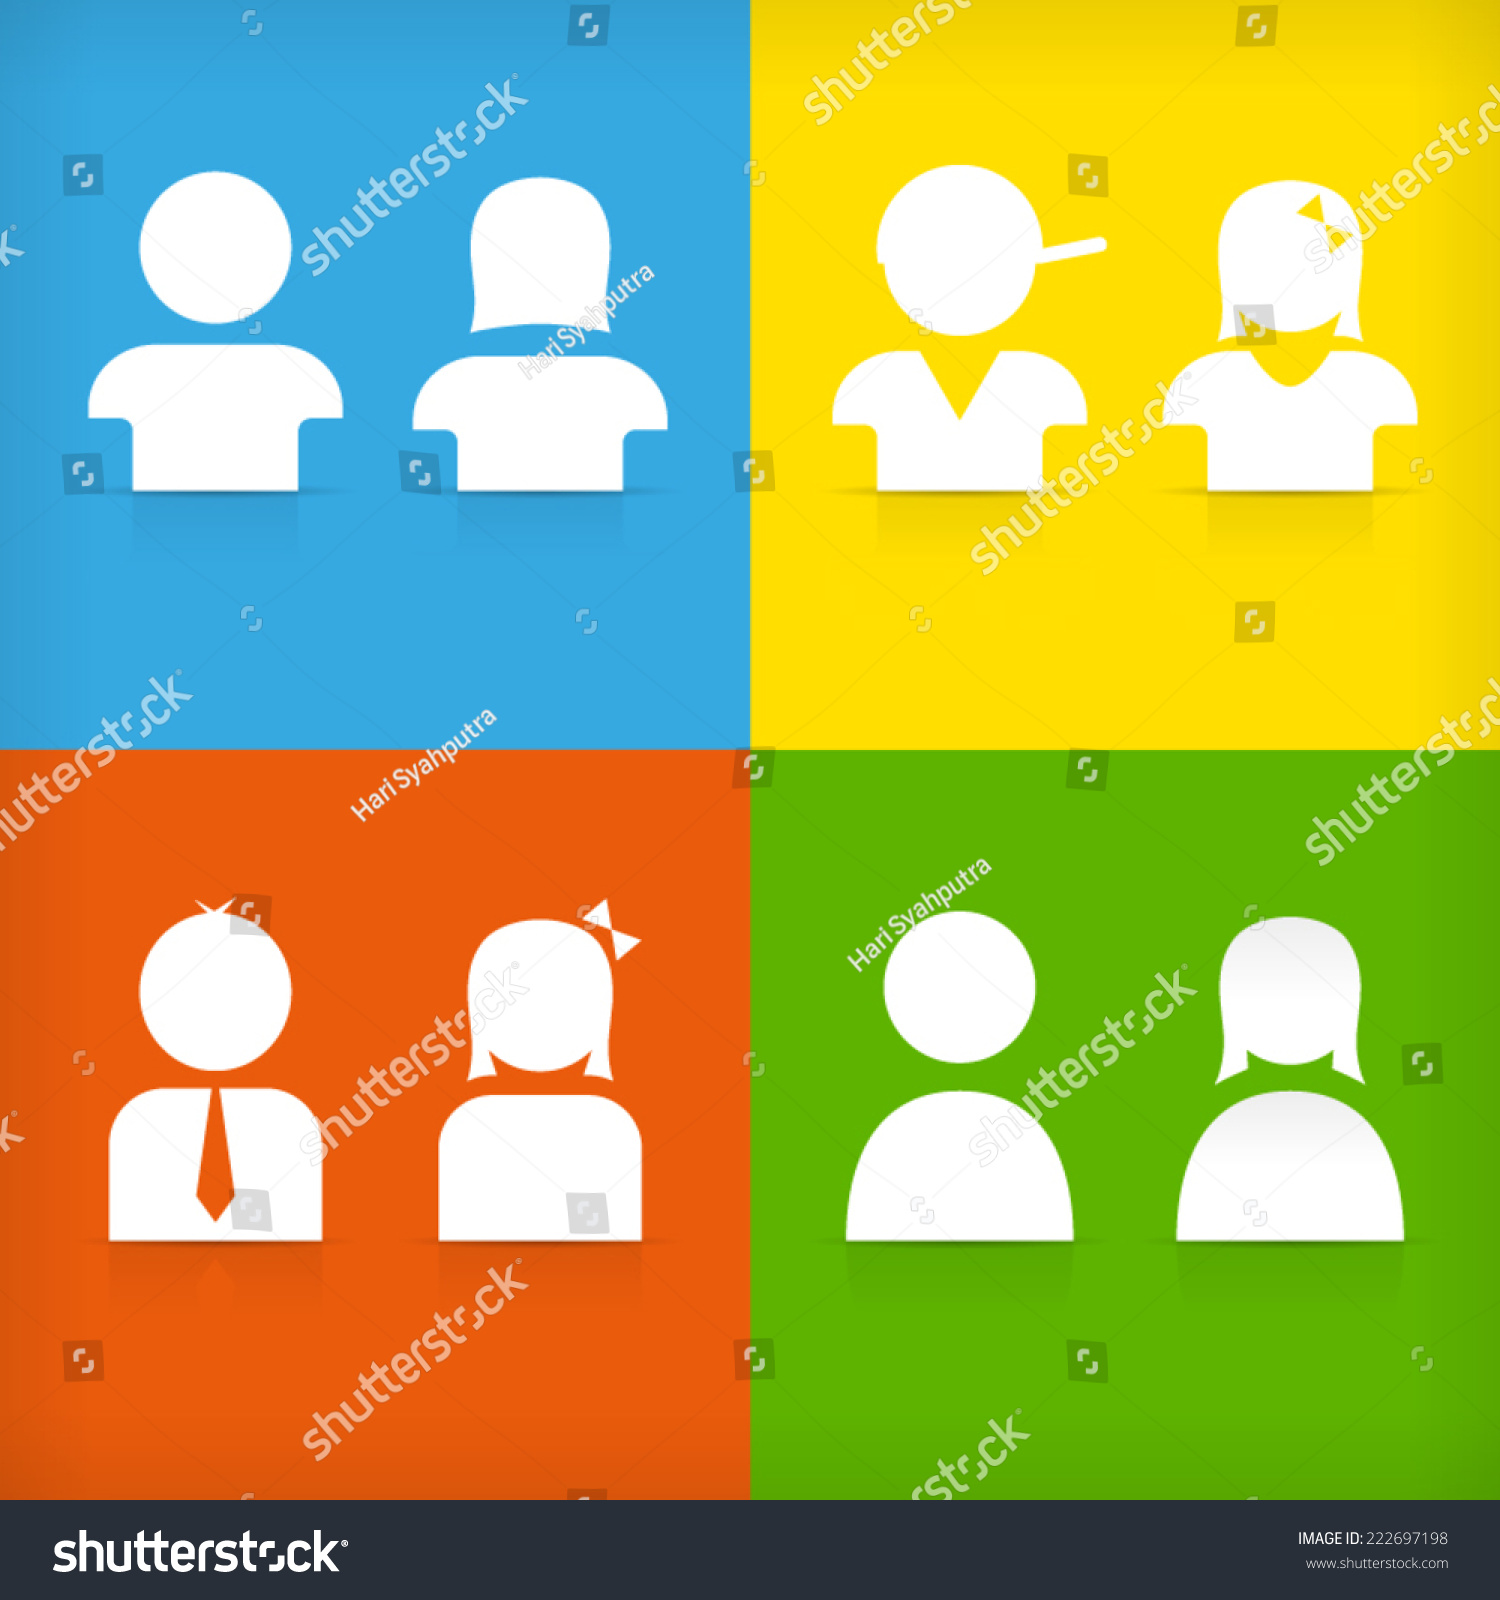 Boy Girl Man Woman Male Female Stock Vector 222697198 - Shutterstock